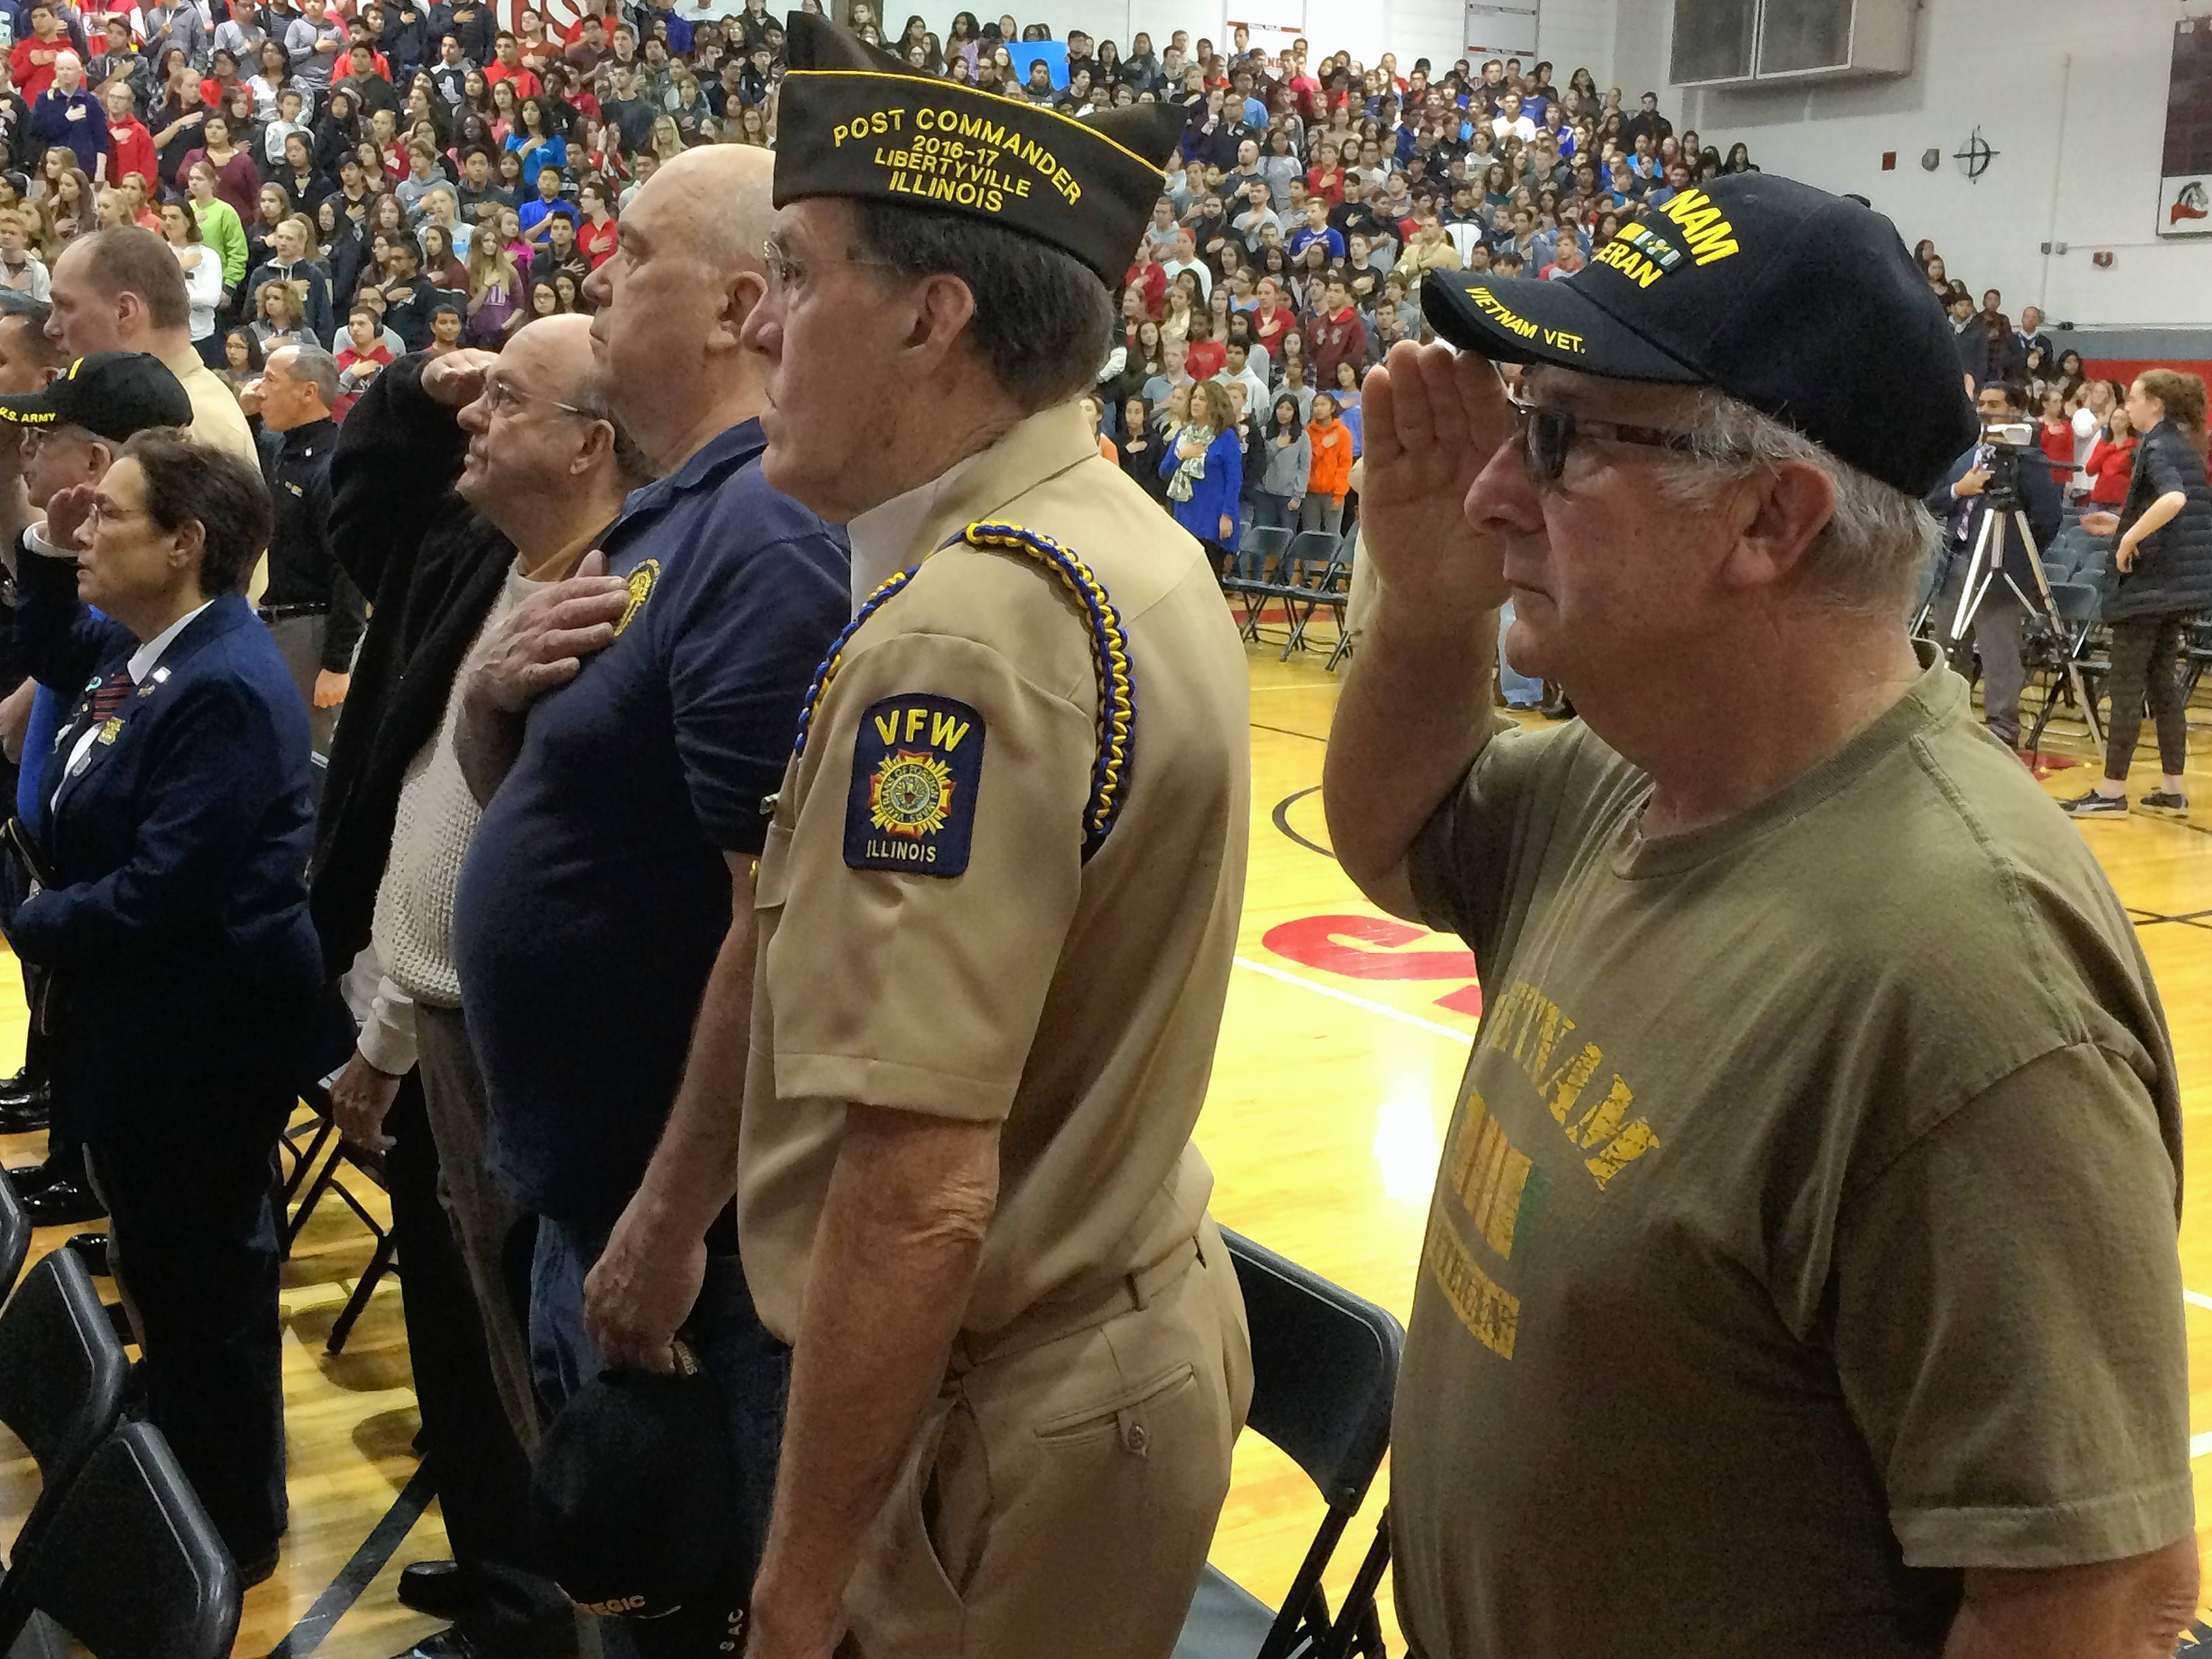 U.S. Navy veteran Steve Kaminsky, second from right, and U.S. Army veteran Salvatore Prato, right, were among those honored Friday at Mundelein High School.